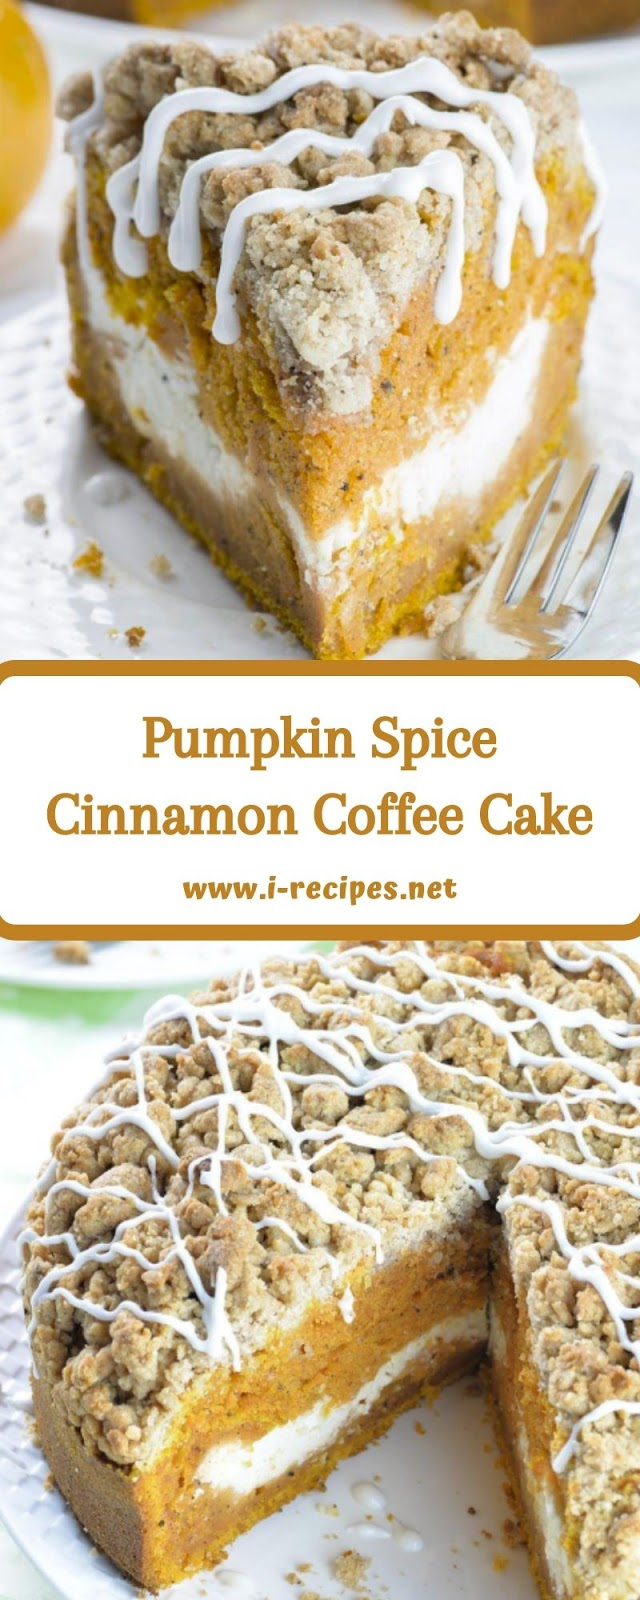 Pumpkin Spice Cinnamon Coffee Cake